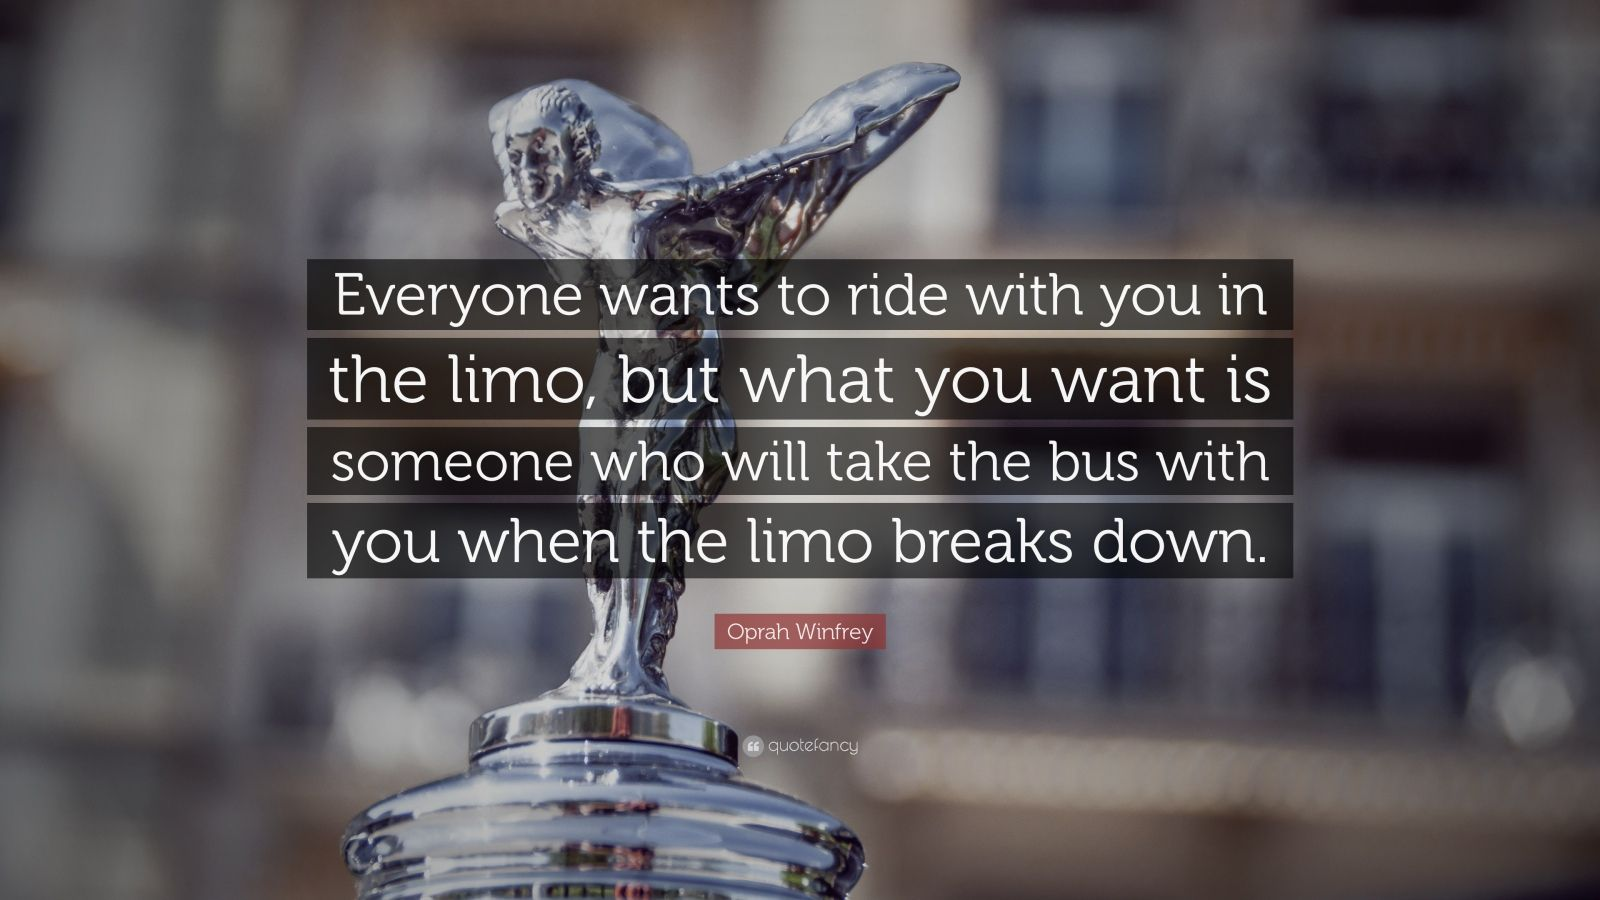 """Oprah Winfrey Quote: """"Everyone wants to ride with you in the limo, but what you want is someone who will take the bus with you when the limo breaks down."""""""